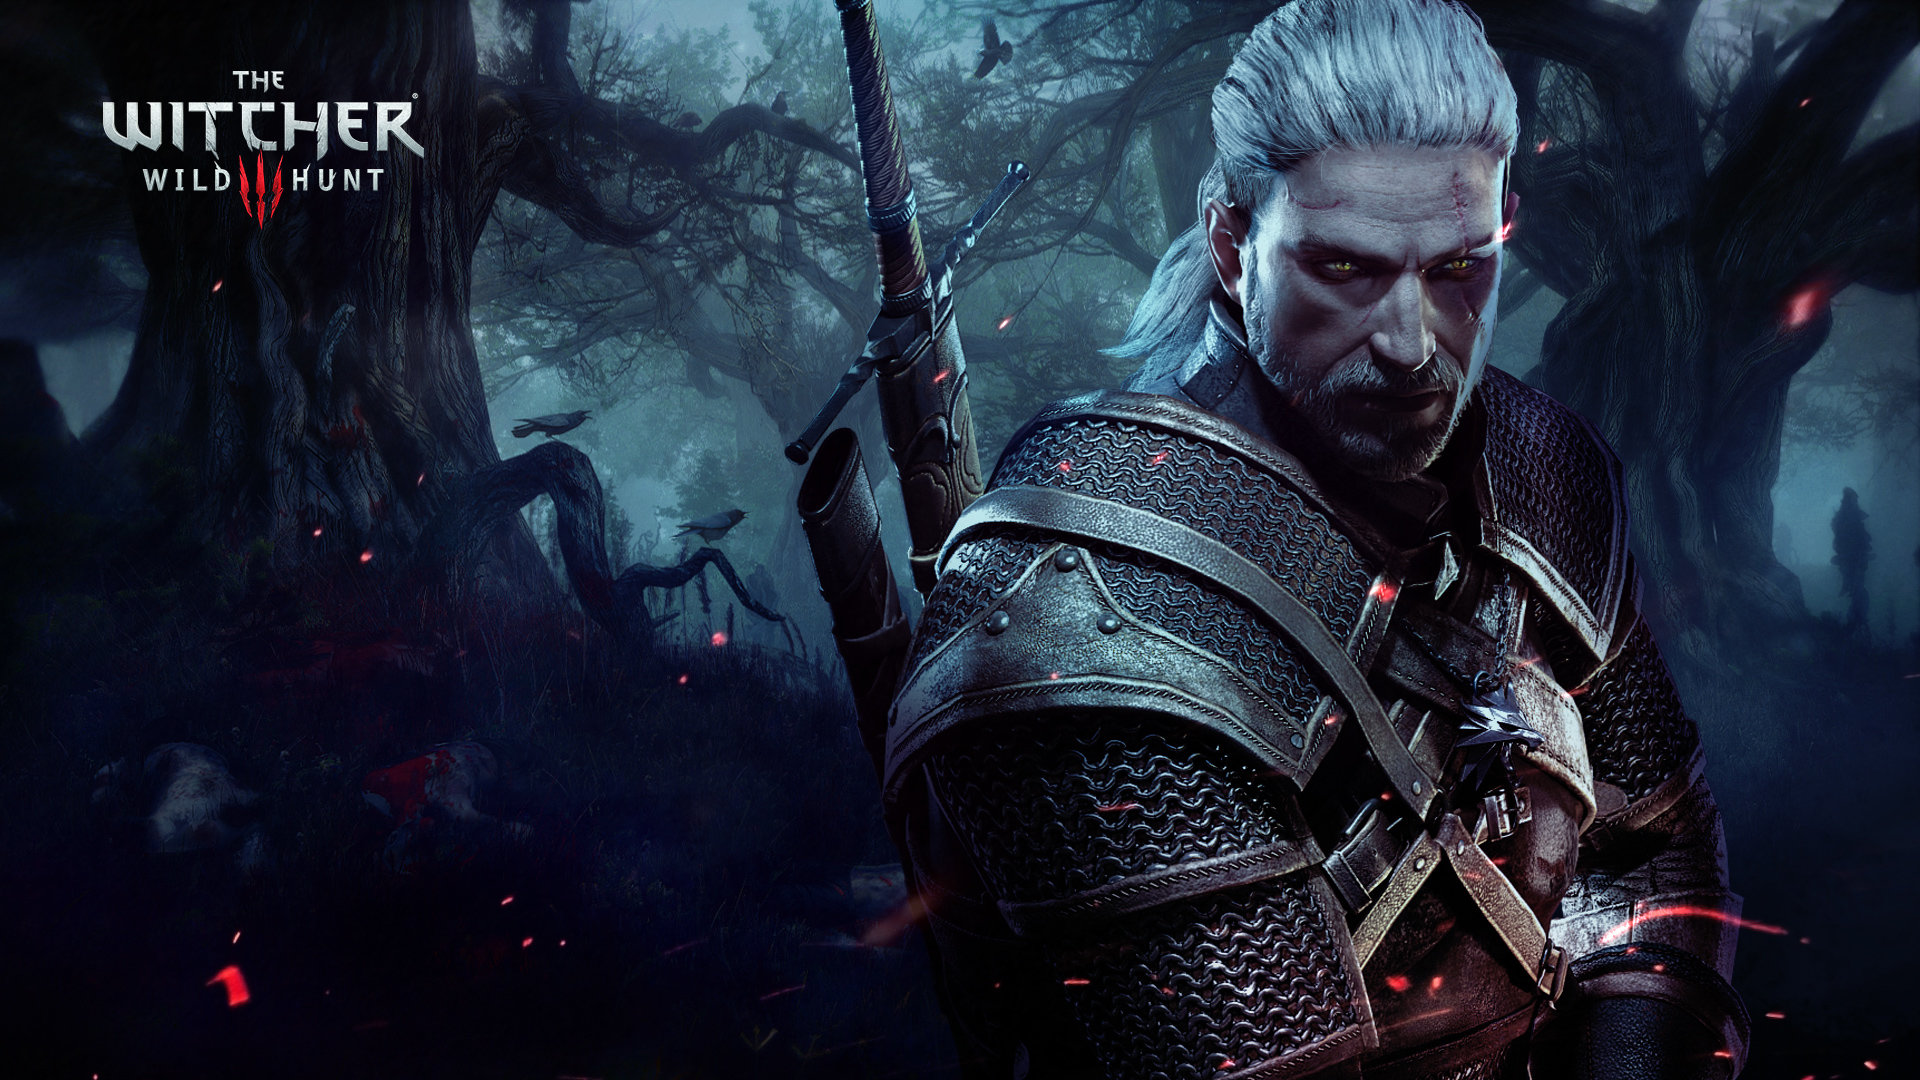 the witcher 3: wild hunt wallpapers 1920x1080 full hd (1080p